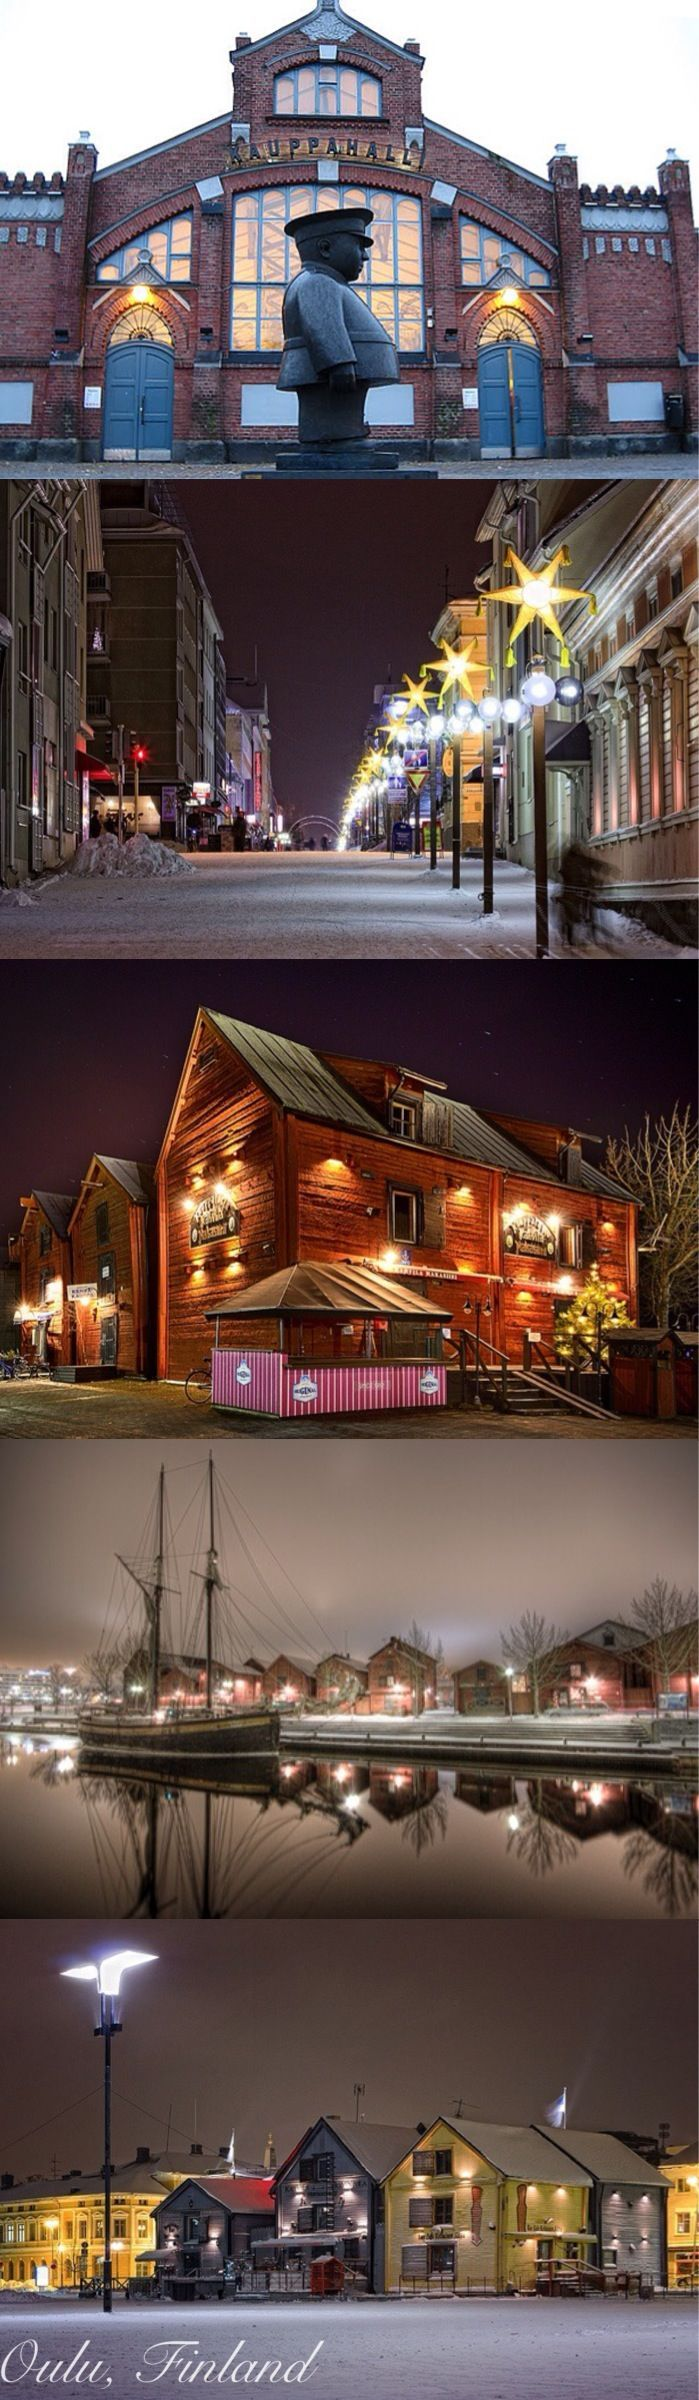 Oulu in the winter, Finland #travel #destinations